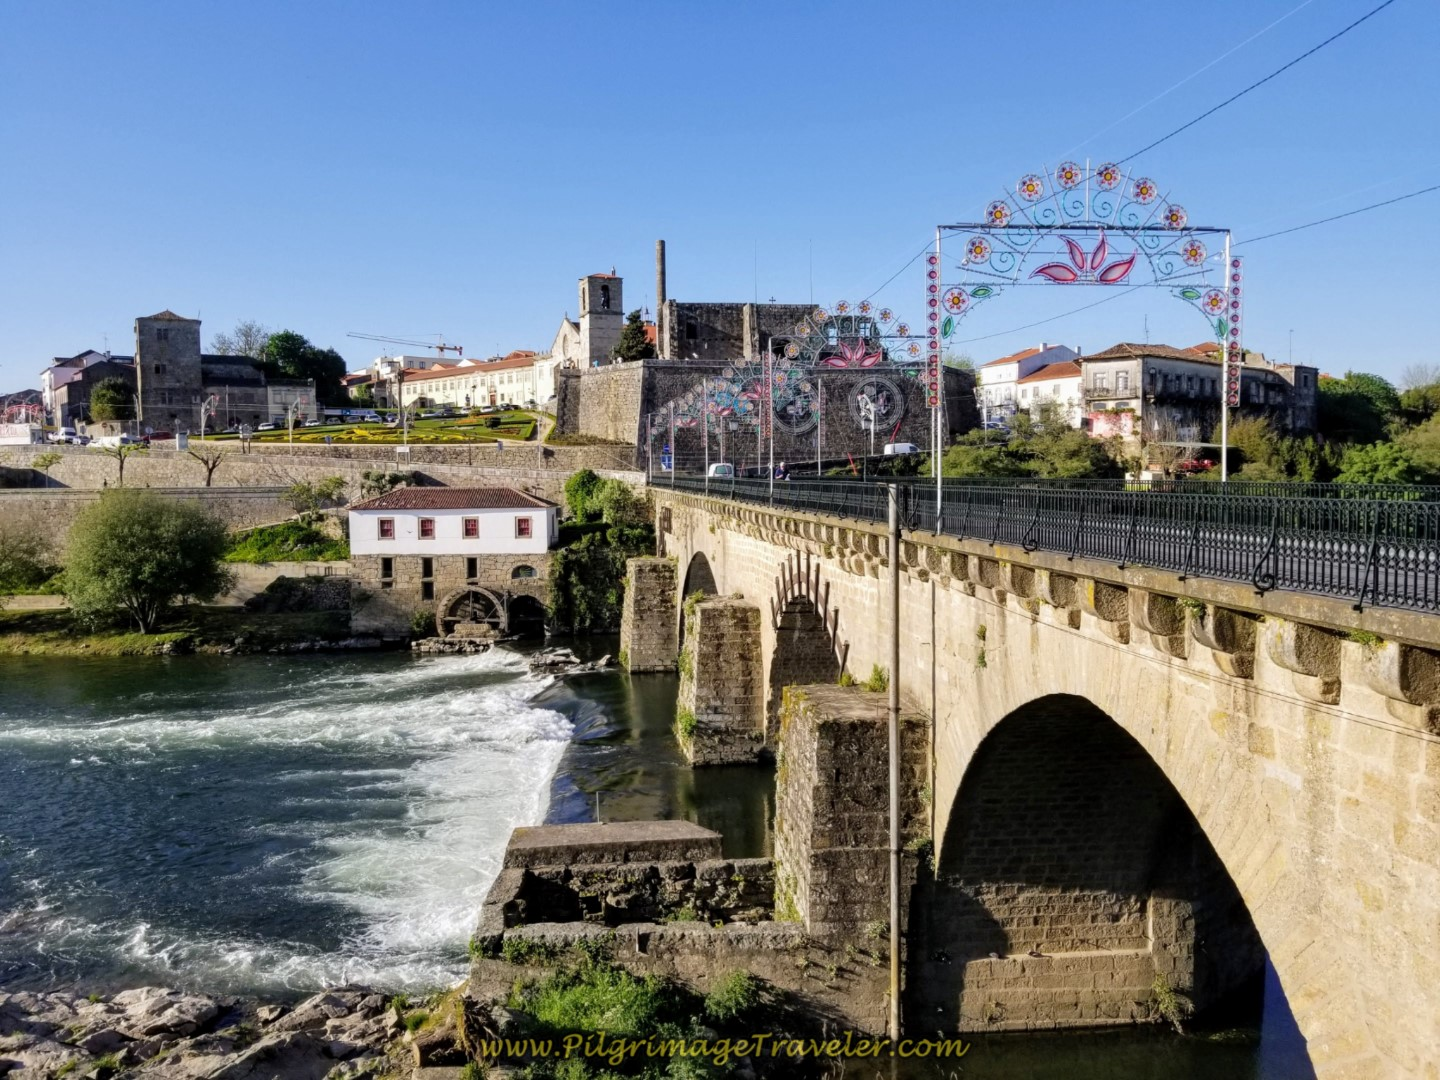 Crossing the Cádavo River on the 14th Century Medieval Bridge into Barcelos, connecting it with Barcelinhos to the south